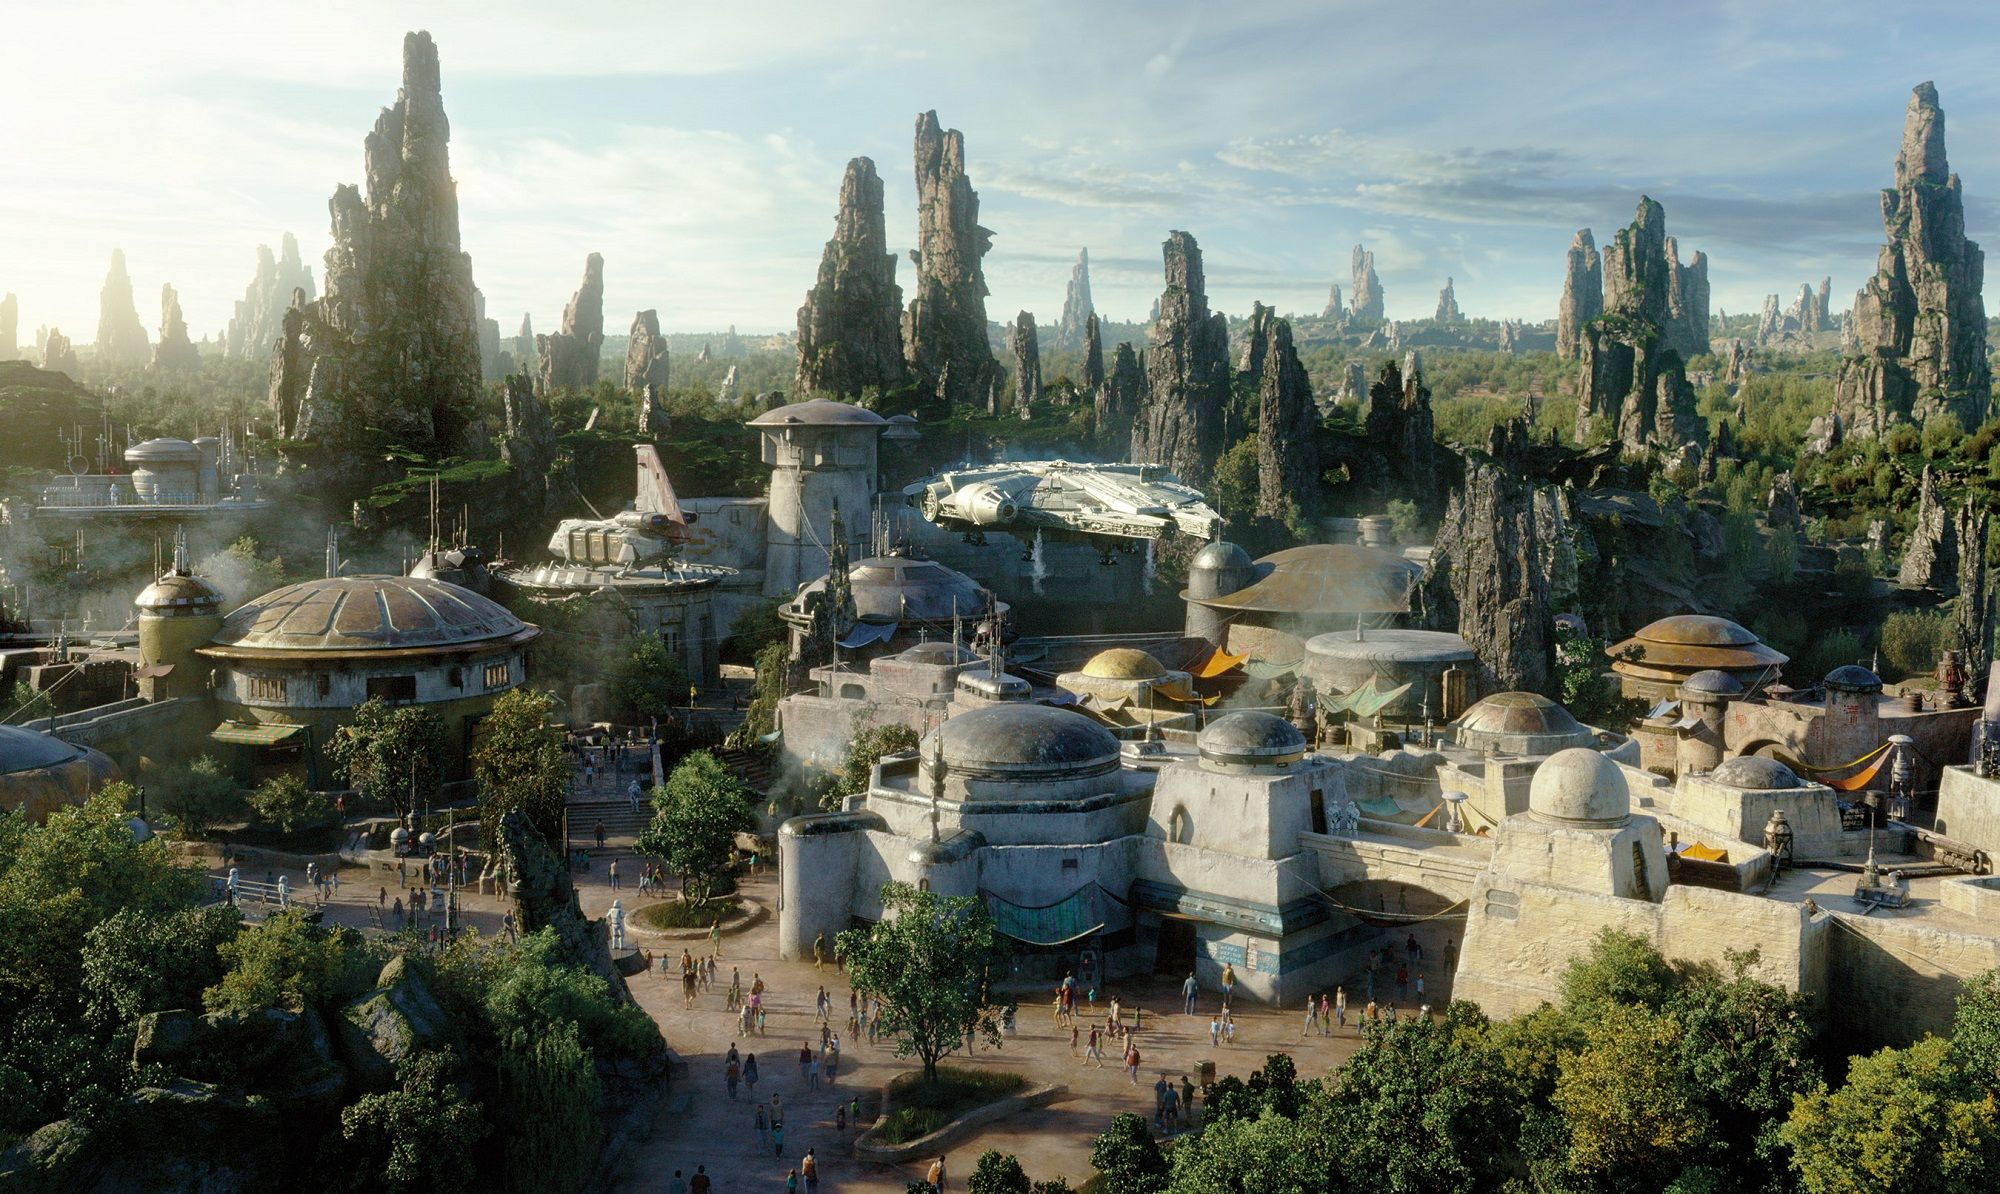 CEO Bob Iger doesn't think Disney is too reliant on 'Star Wars'